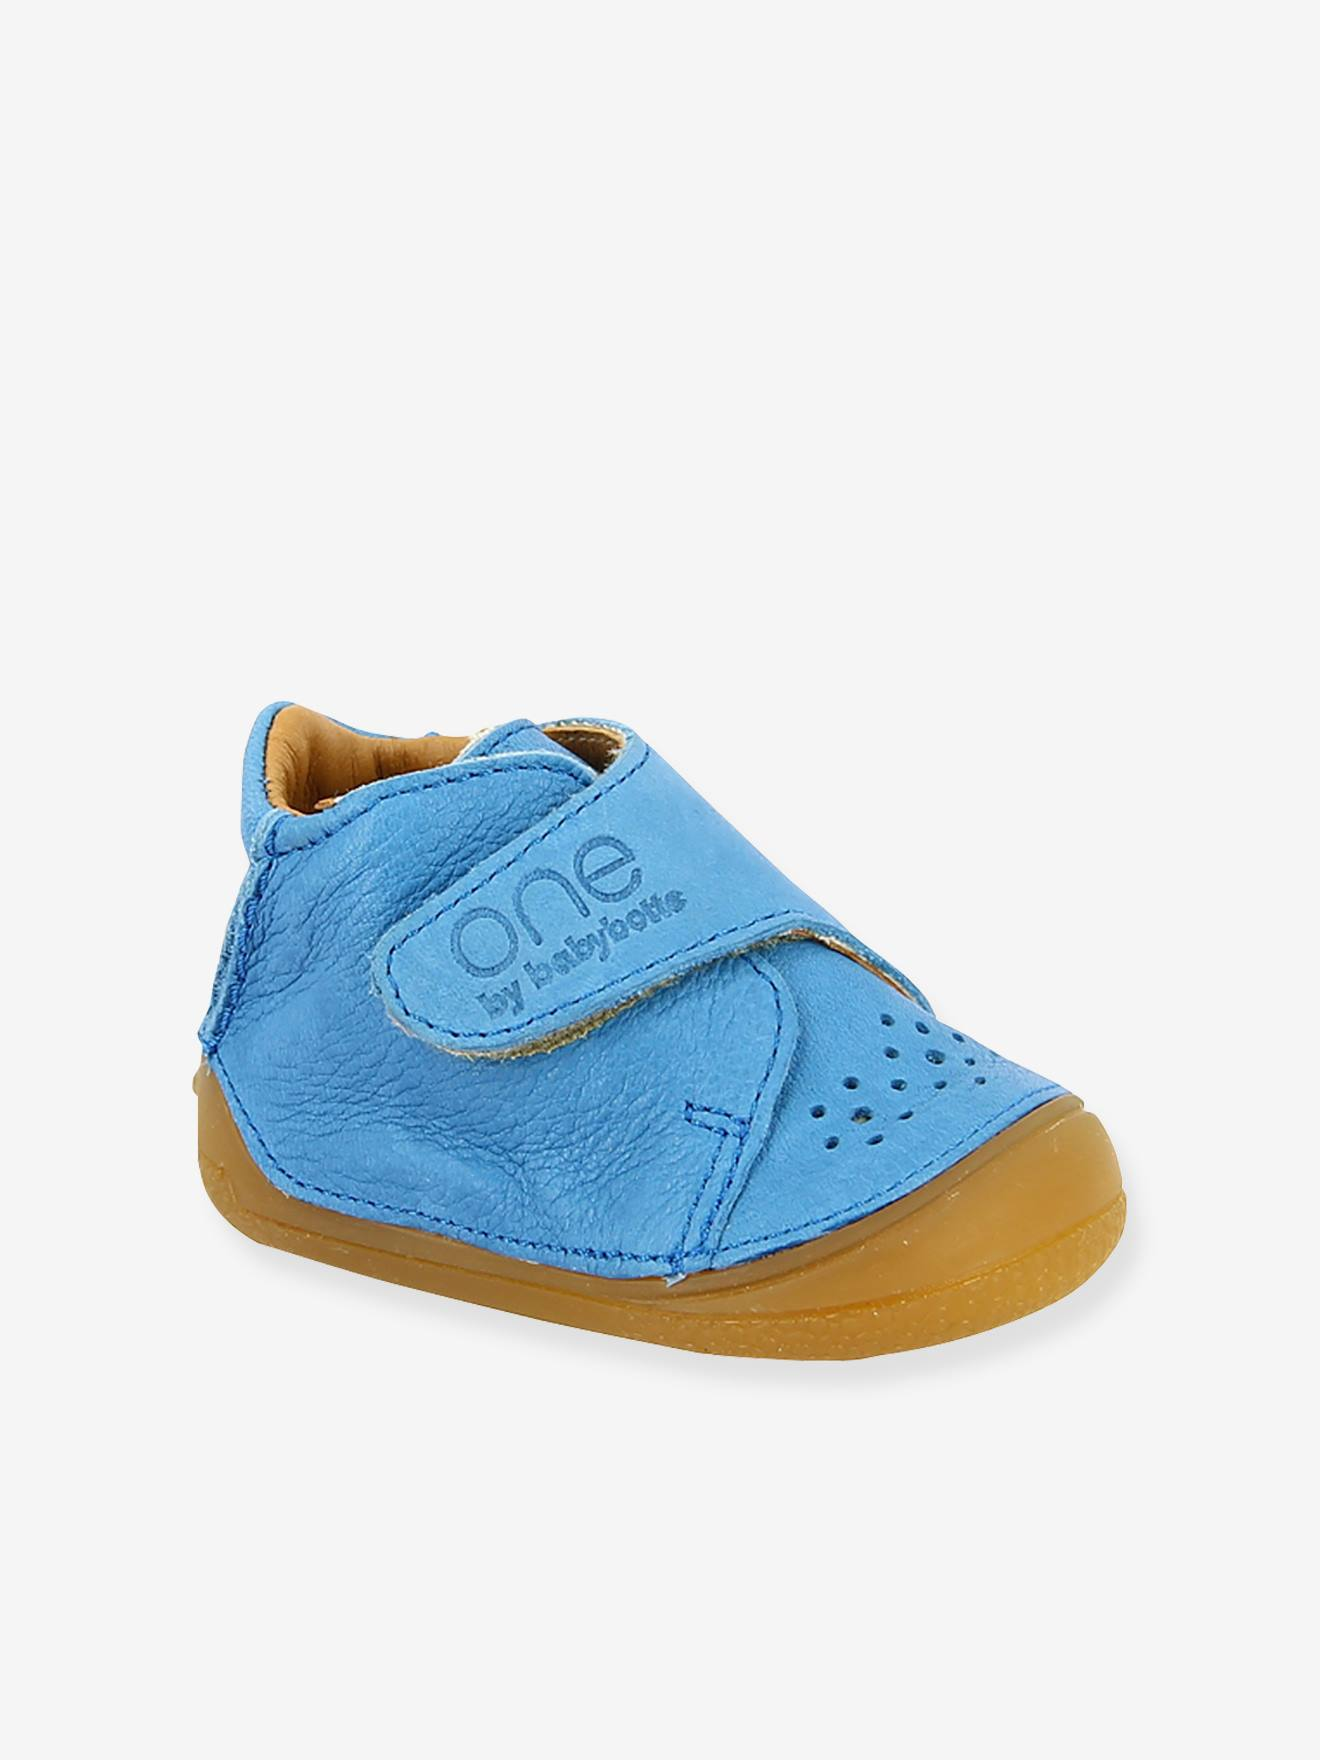 2018 sneakers discount sale search for genuine Touch-Fastening Leather Ankle Boots for Boys, Zenitude by Babybotte® - blue  bright solid, Shoes | Vertbaudet